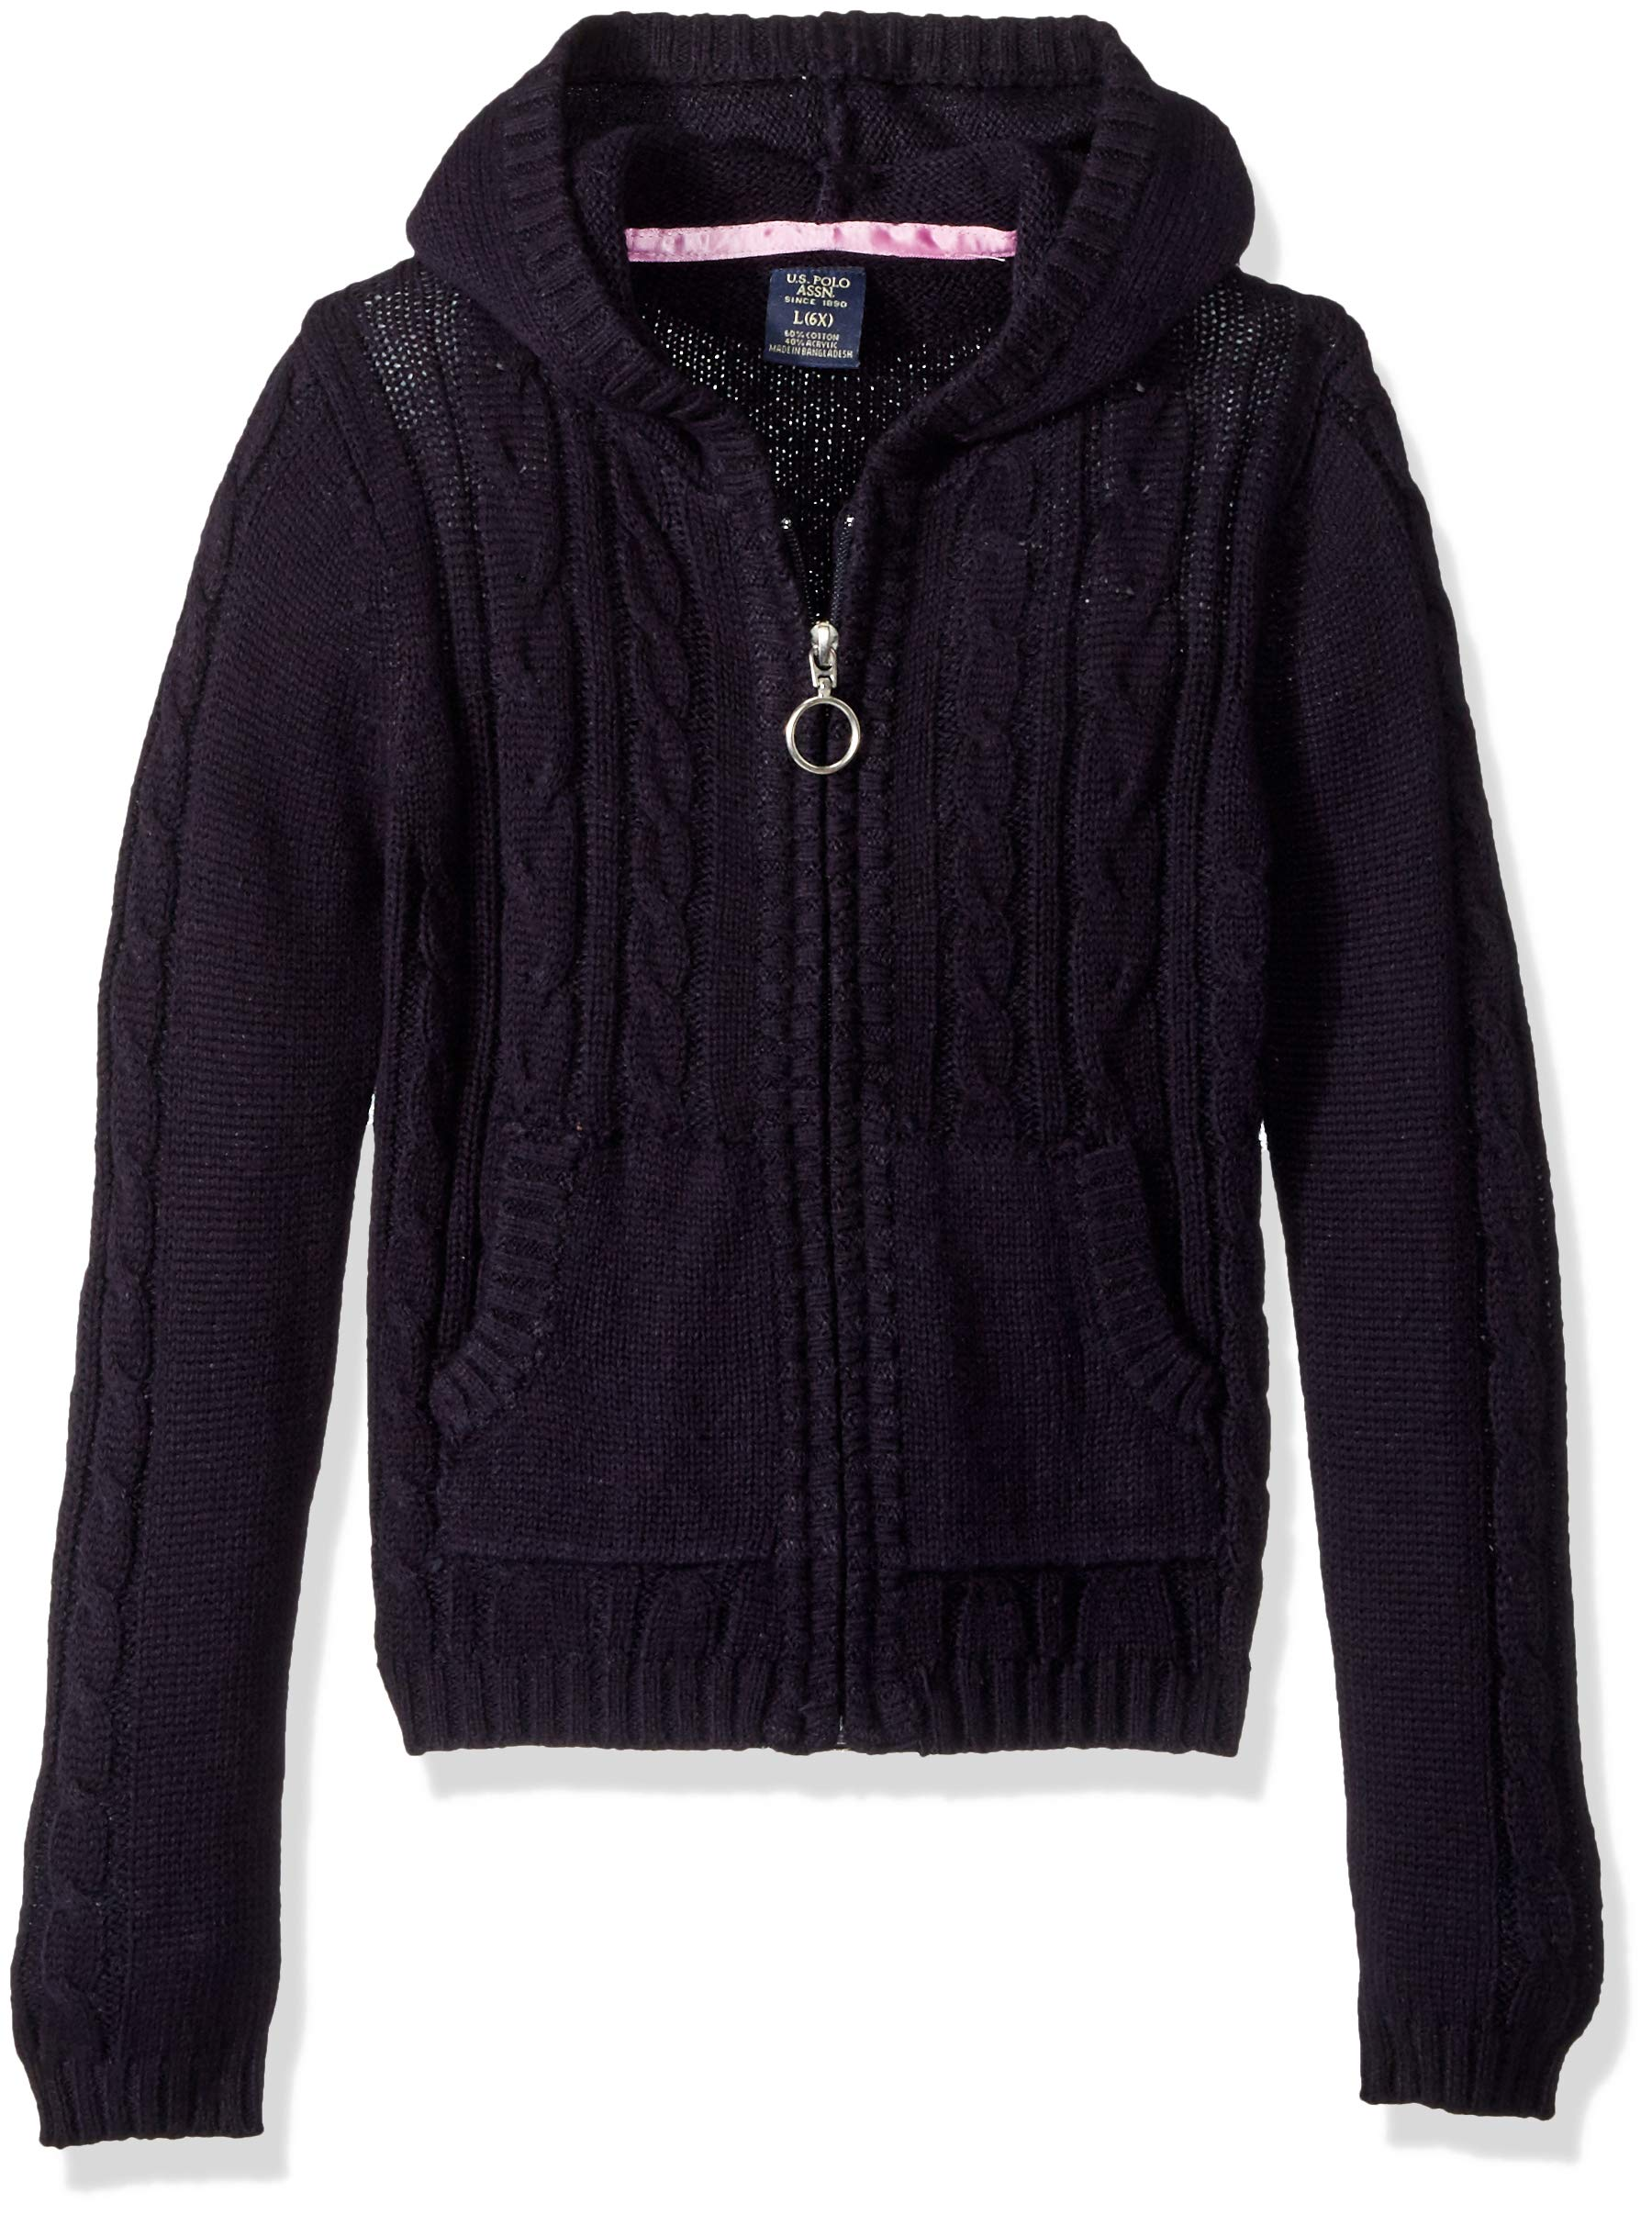 U.S. Polo Assn. Girls' Little Cable Knit Zip Front Hi-Lo Hooded Sweater, Navy, 6X